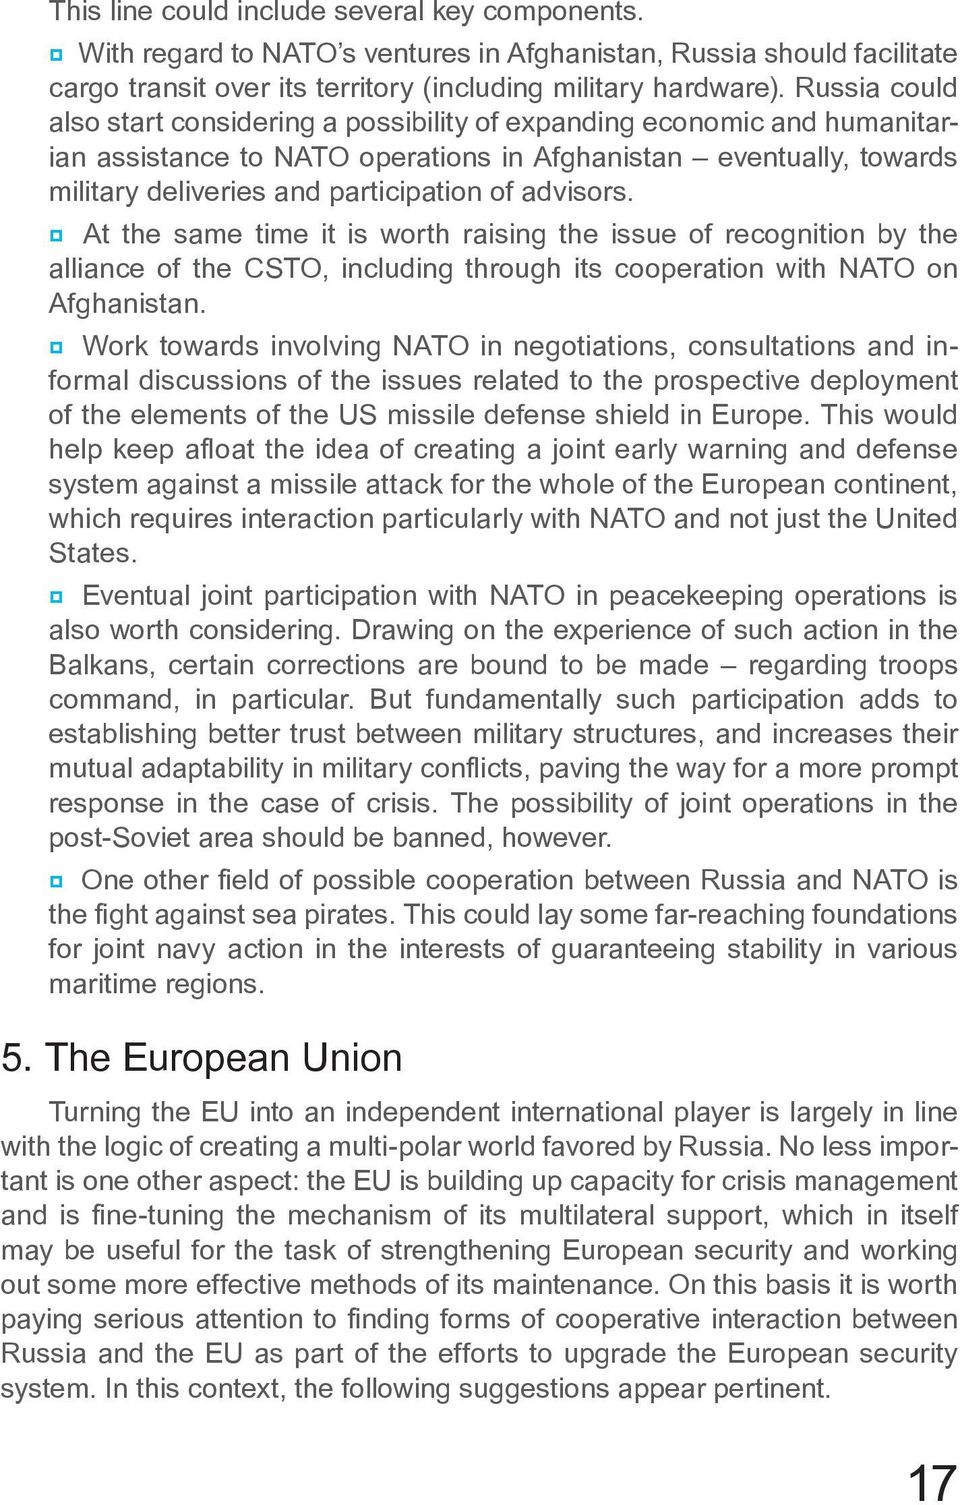 advisors. At the same time it is worth raising the issue of recognition by the alliance of the CSTO, including through its cooperation with NATO on Afghanistan.